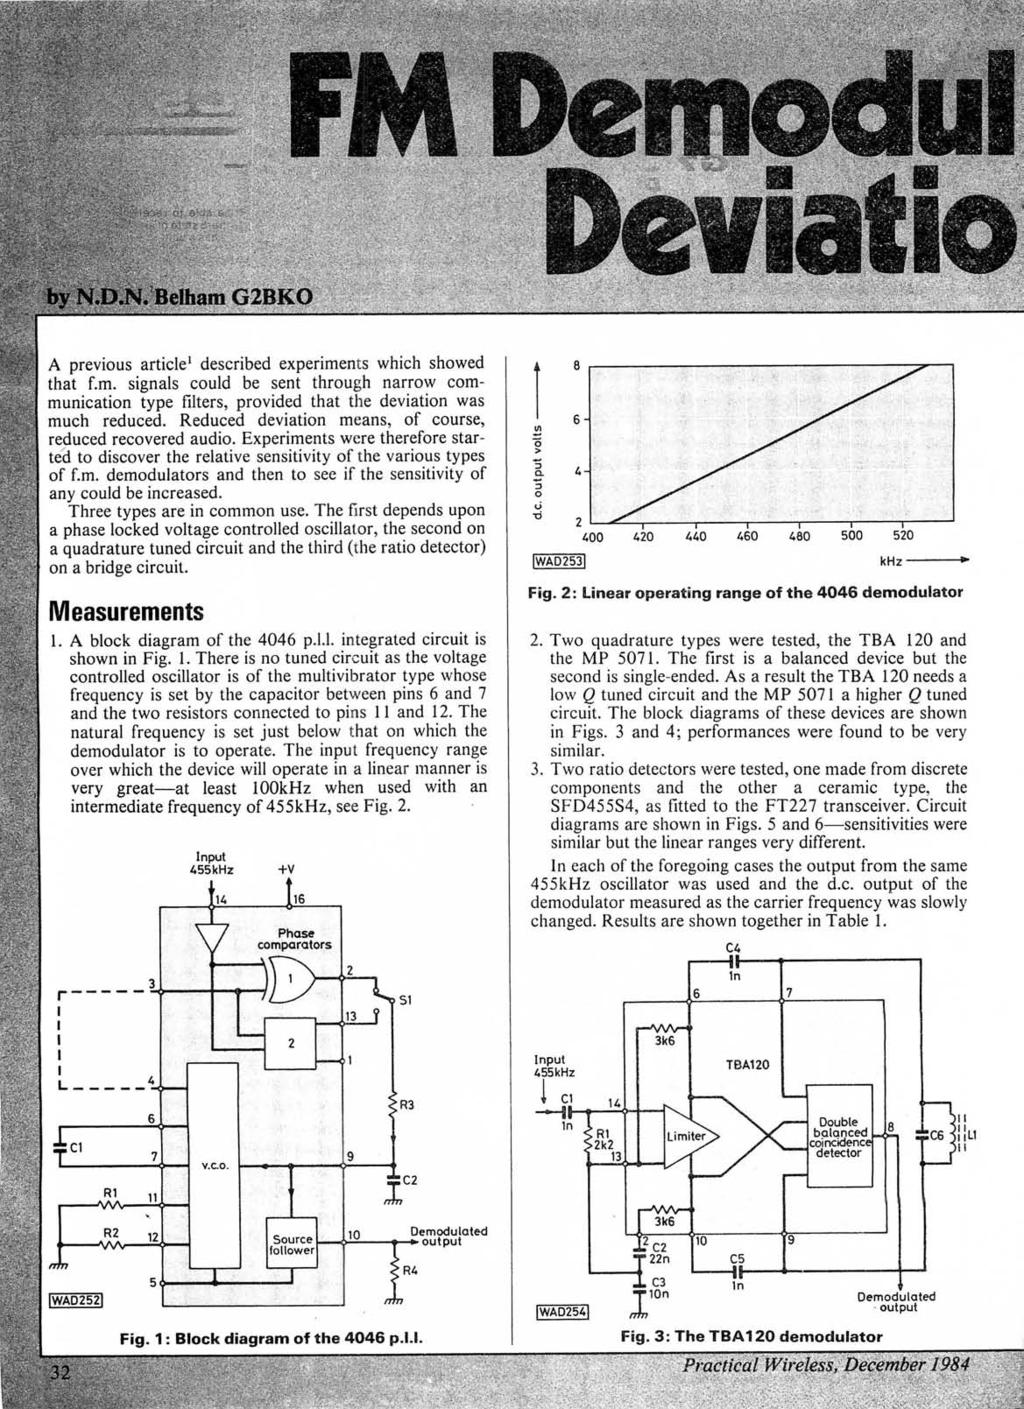 A New Approach To Hf Antennae Design Typical Spec Tor No Of Fm Transmitter Modulation Using Vco Block Diagram Chipset 4046 Pll Previous Article Described Experiments Which Showed That Signals Could Be Sent Through Narrow